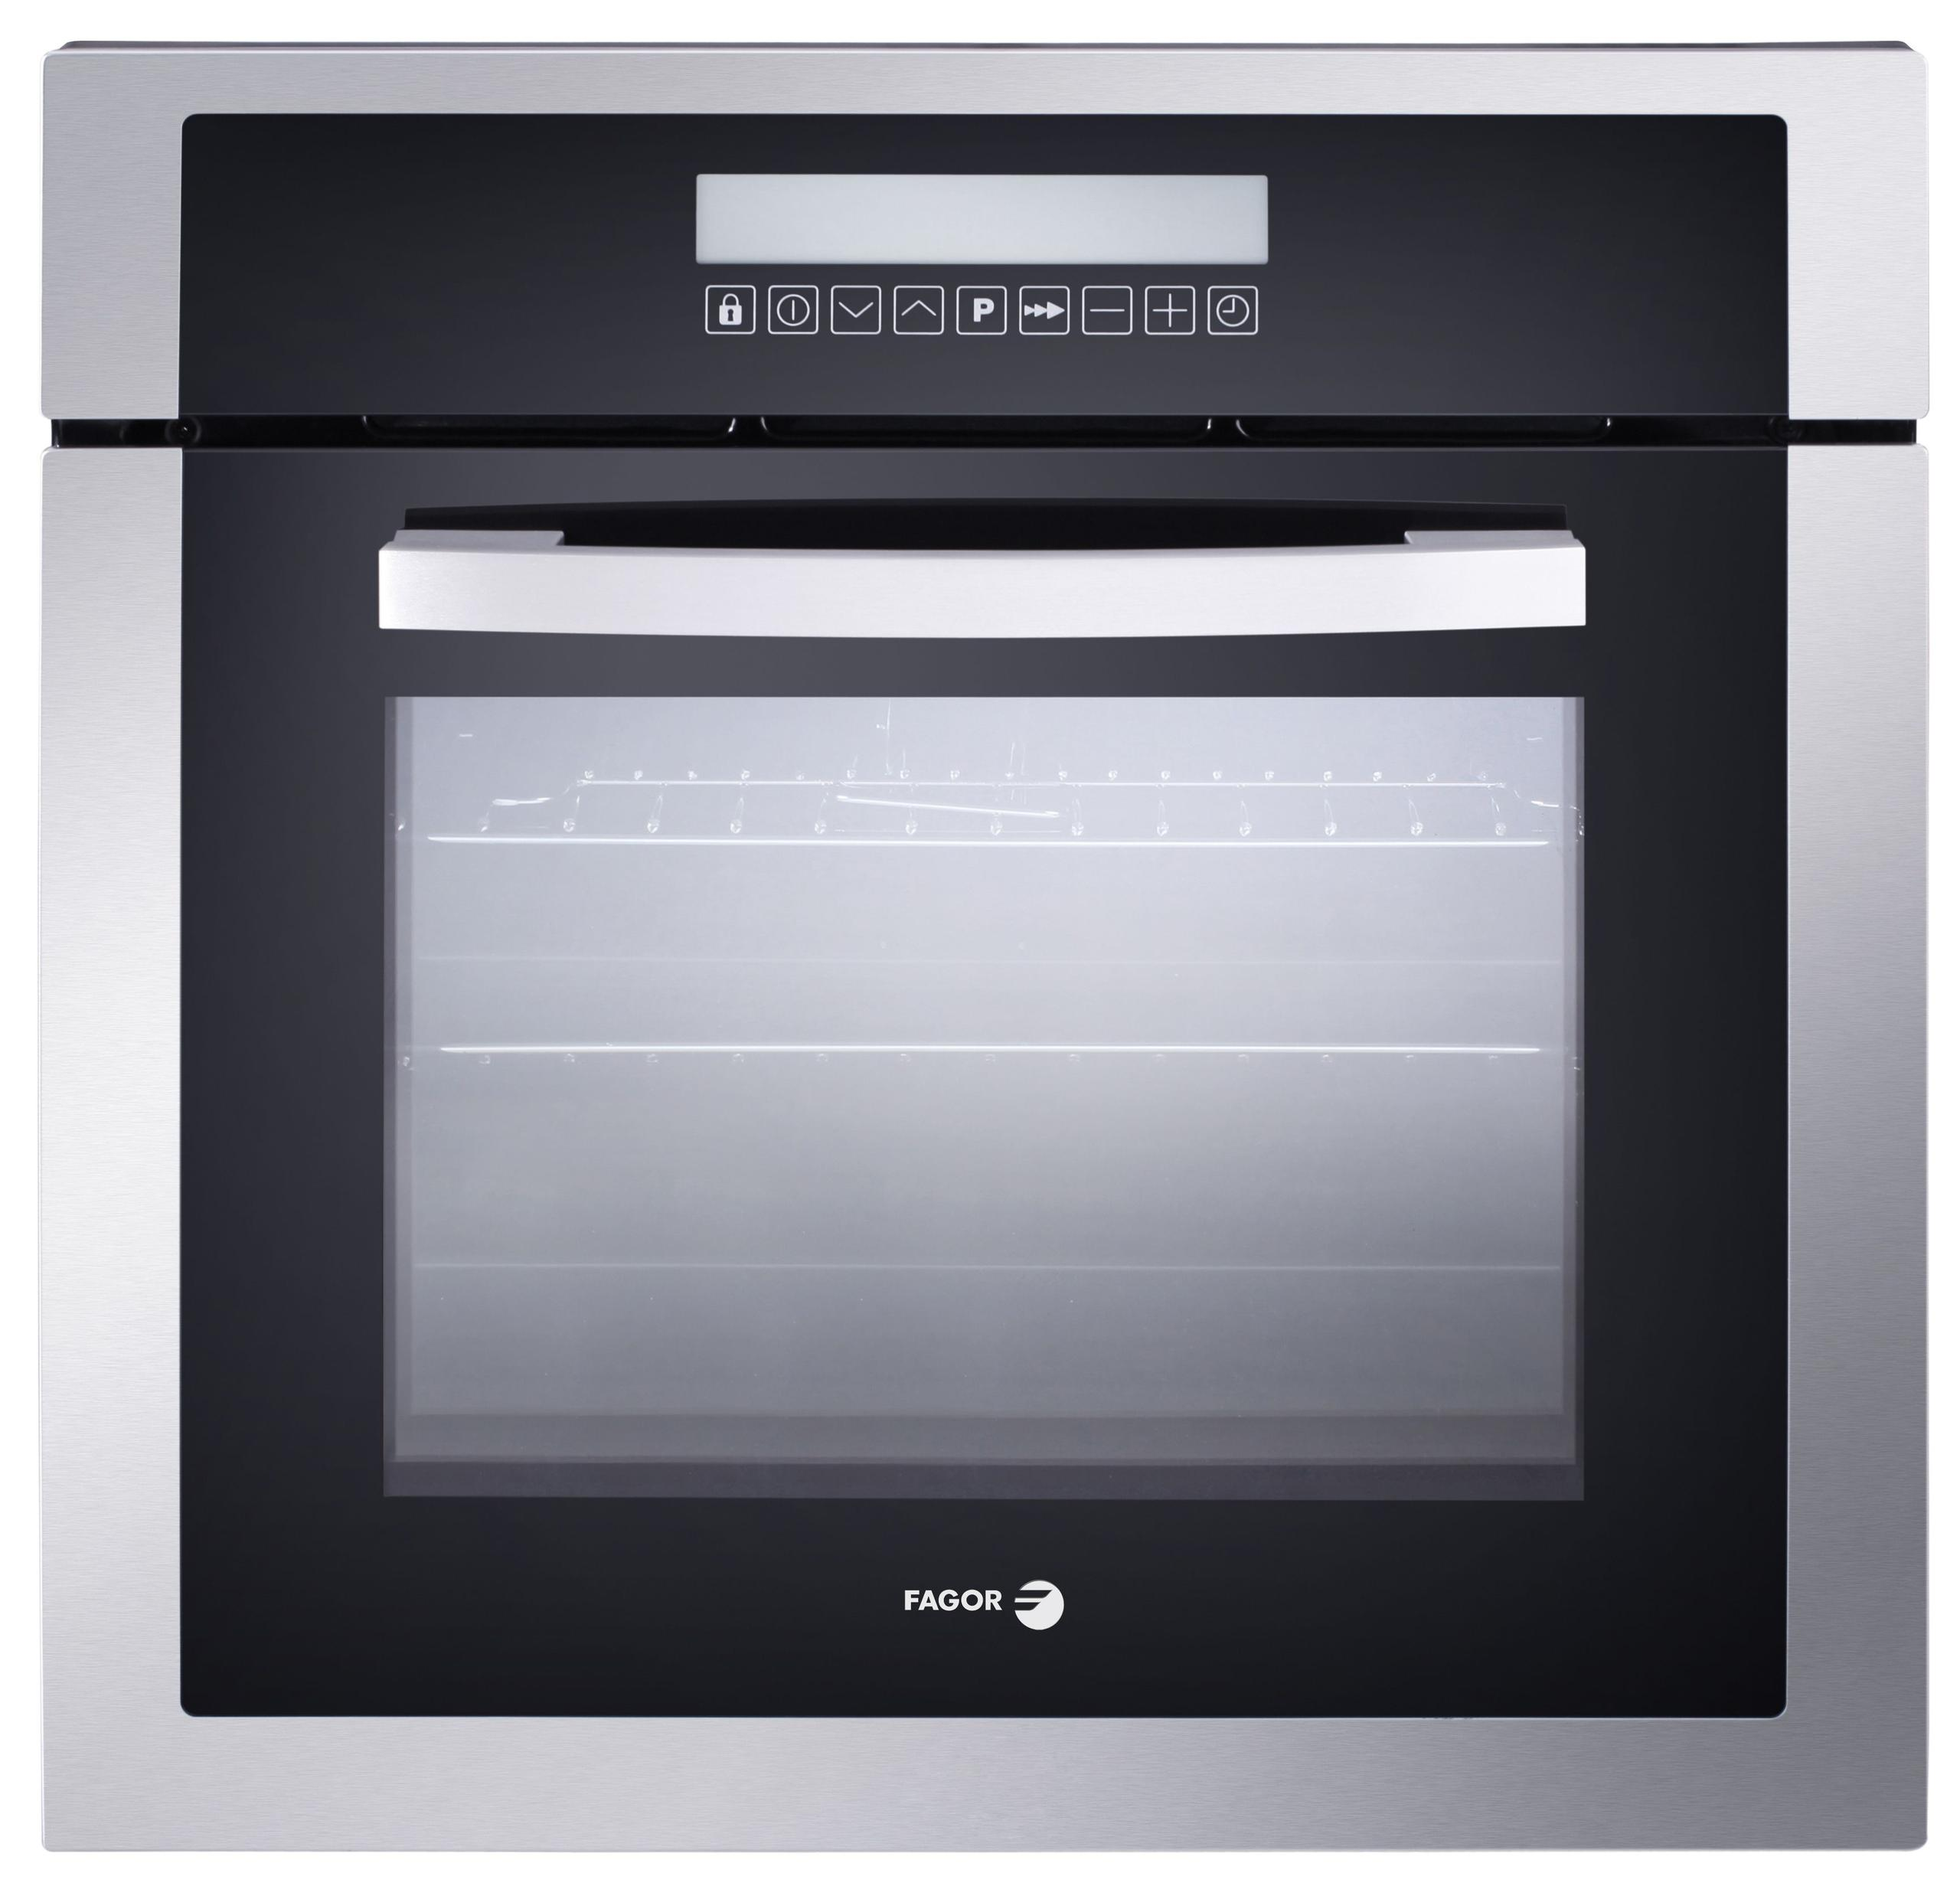 FagorConvection Drop Down Oven